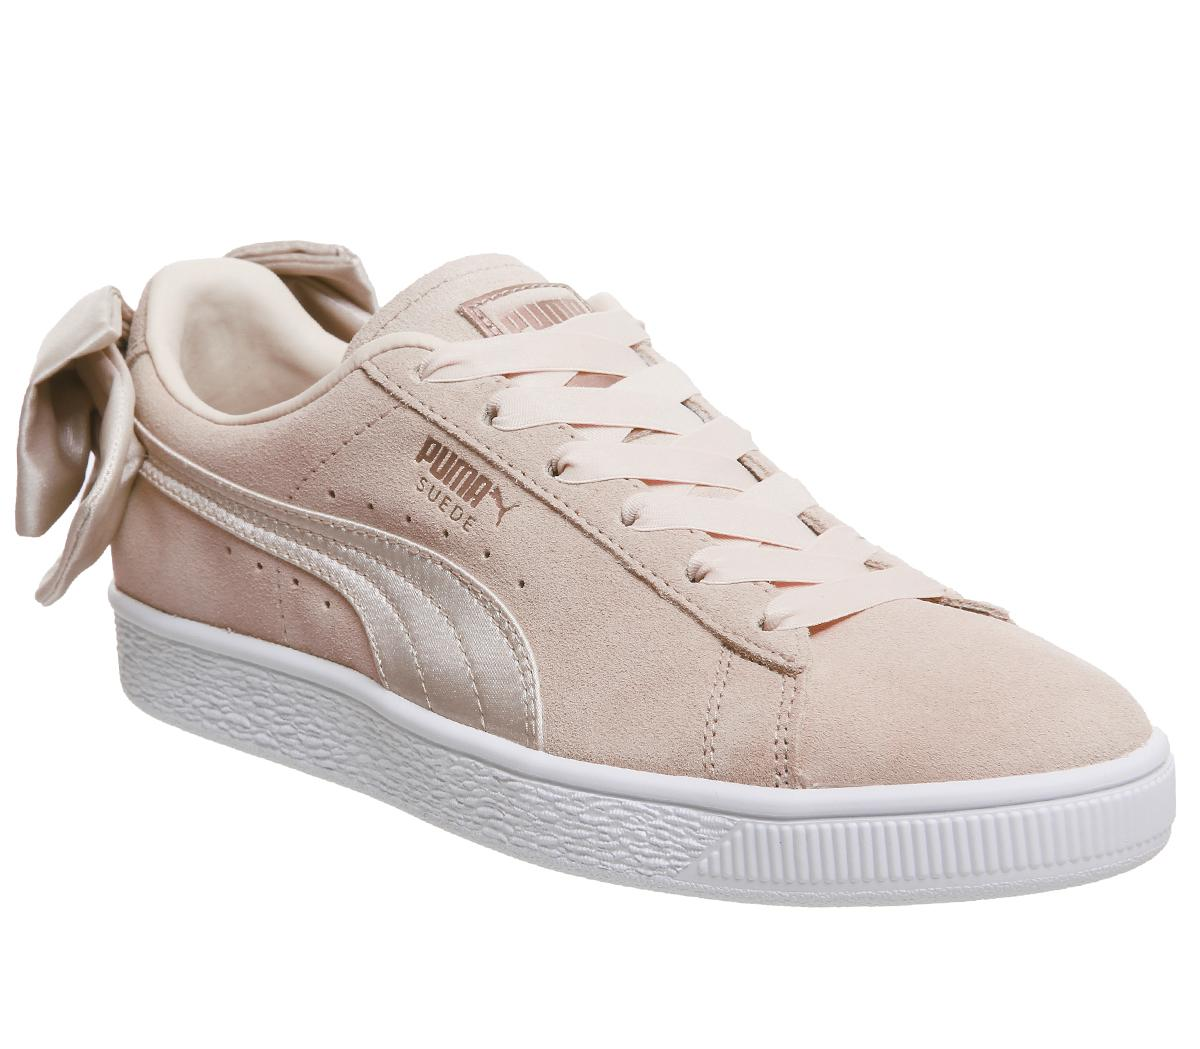 Puma Suede Bow Trainers